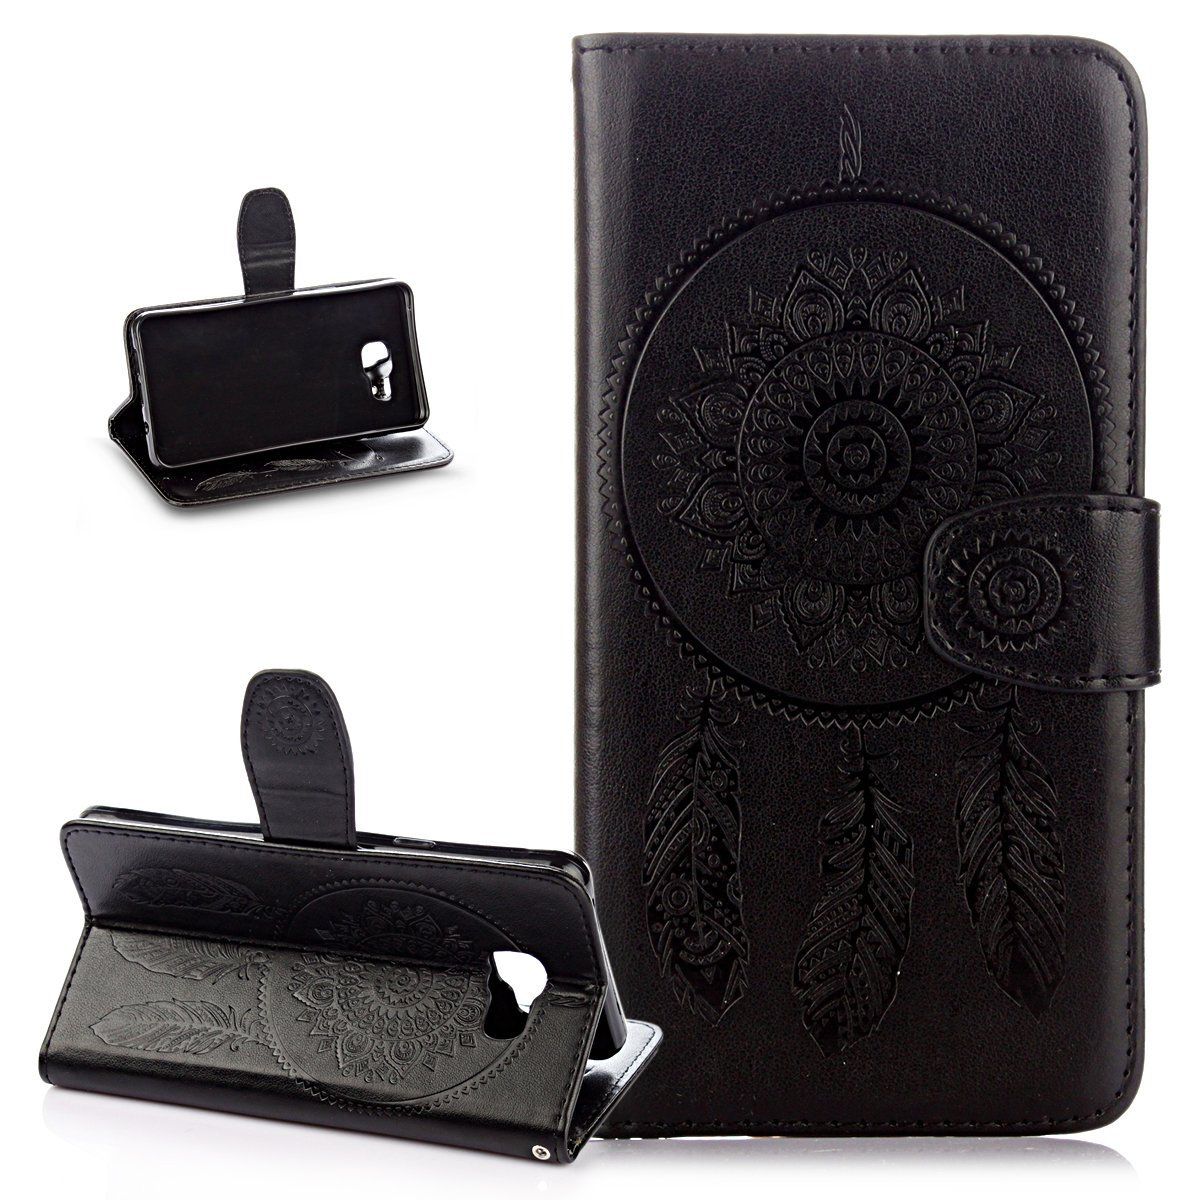 Galaxy A5 2016 Case, Wallet Case for Galaxy A5 2016, ikasus Embossing Dream Catcher Ethnic Tribal Feather Campanula PU Leather Fold Wallet Pouch Case Premium Leather Wallet Flip Stand Credit Card Holders Case Cover for Samsung Galaxy A5 (2016) SM-A510F 5.2